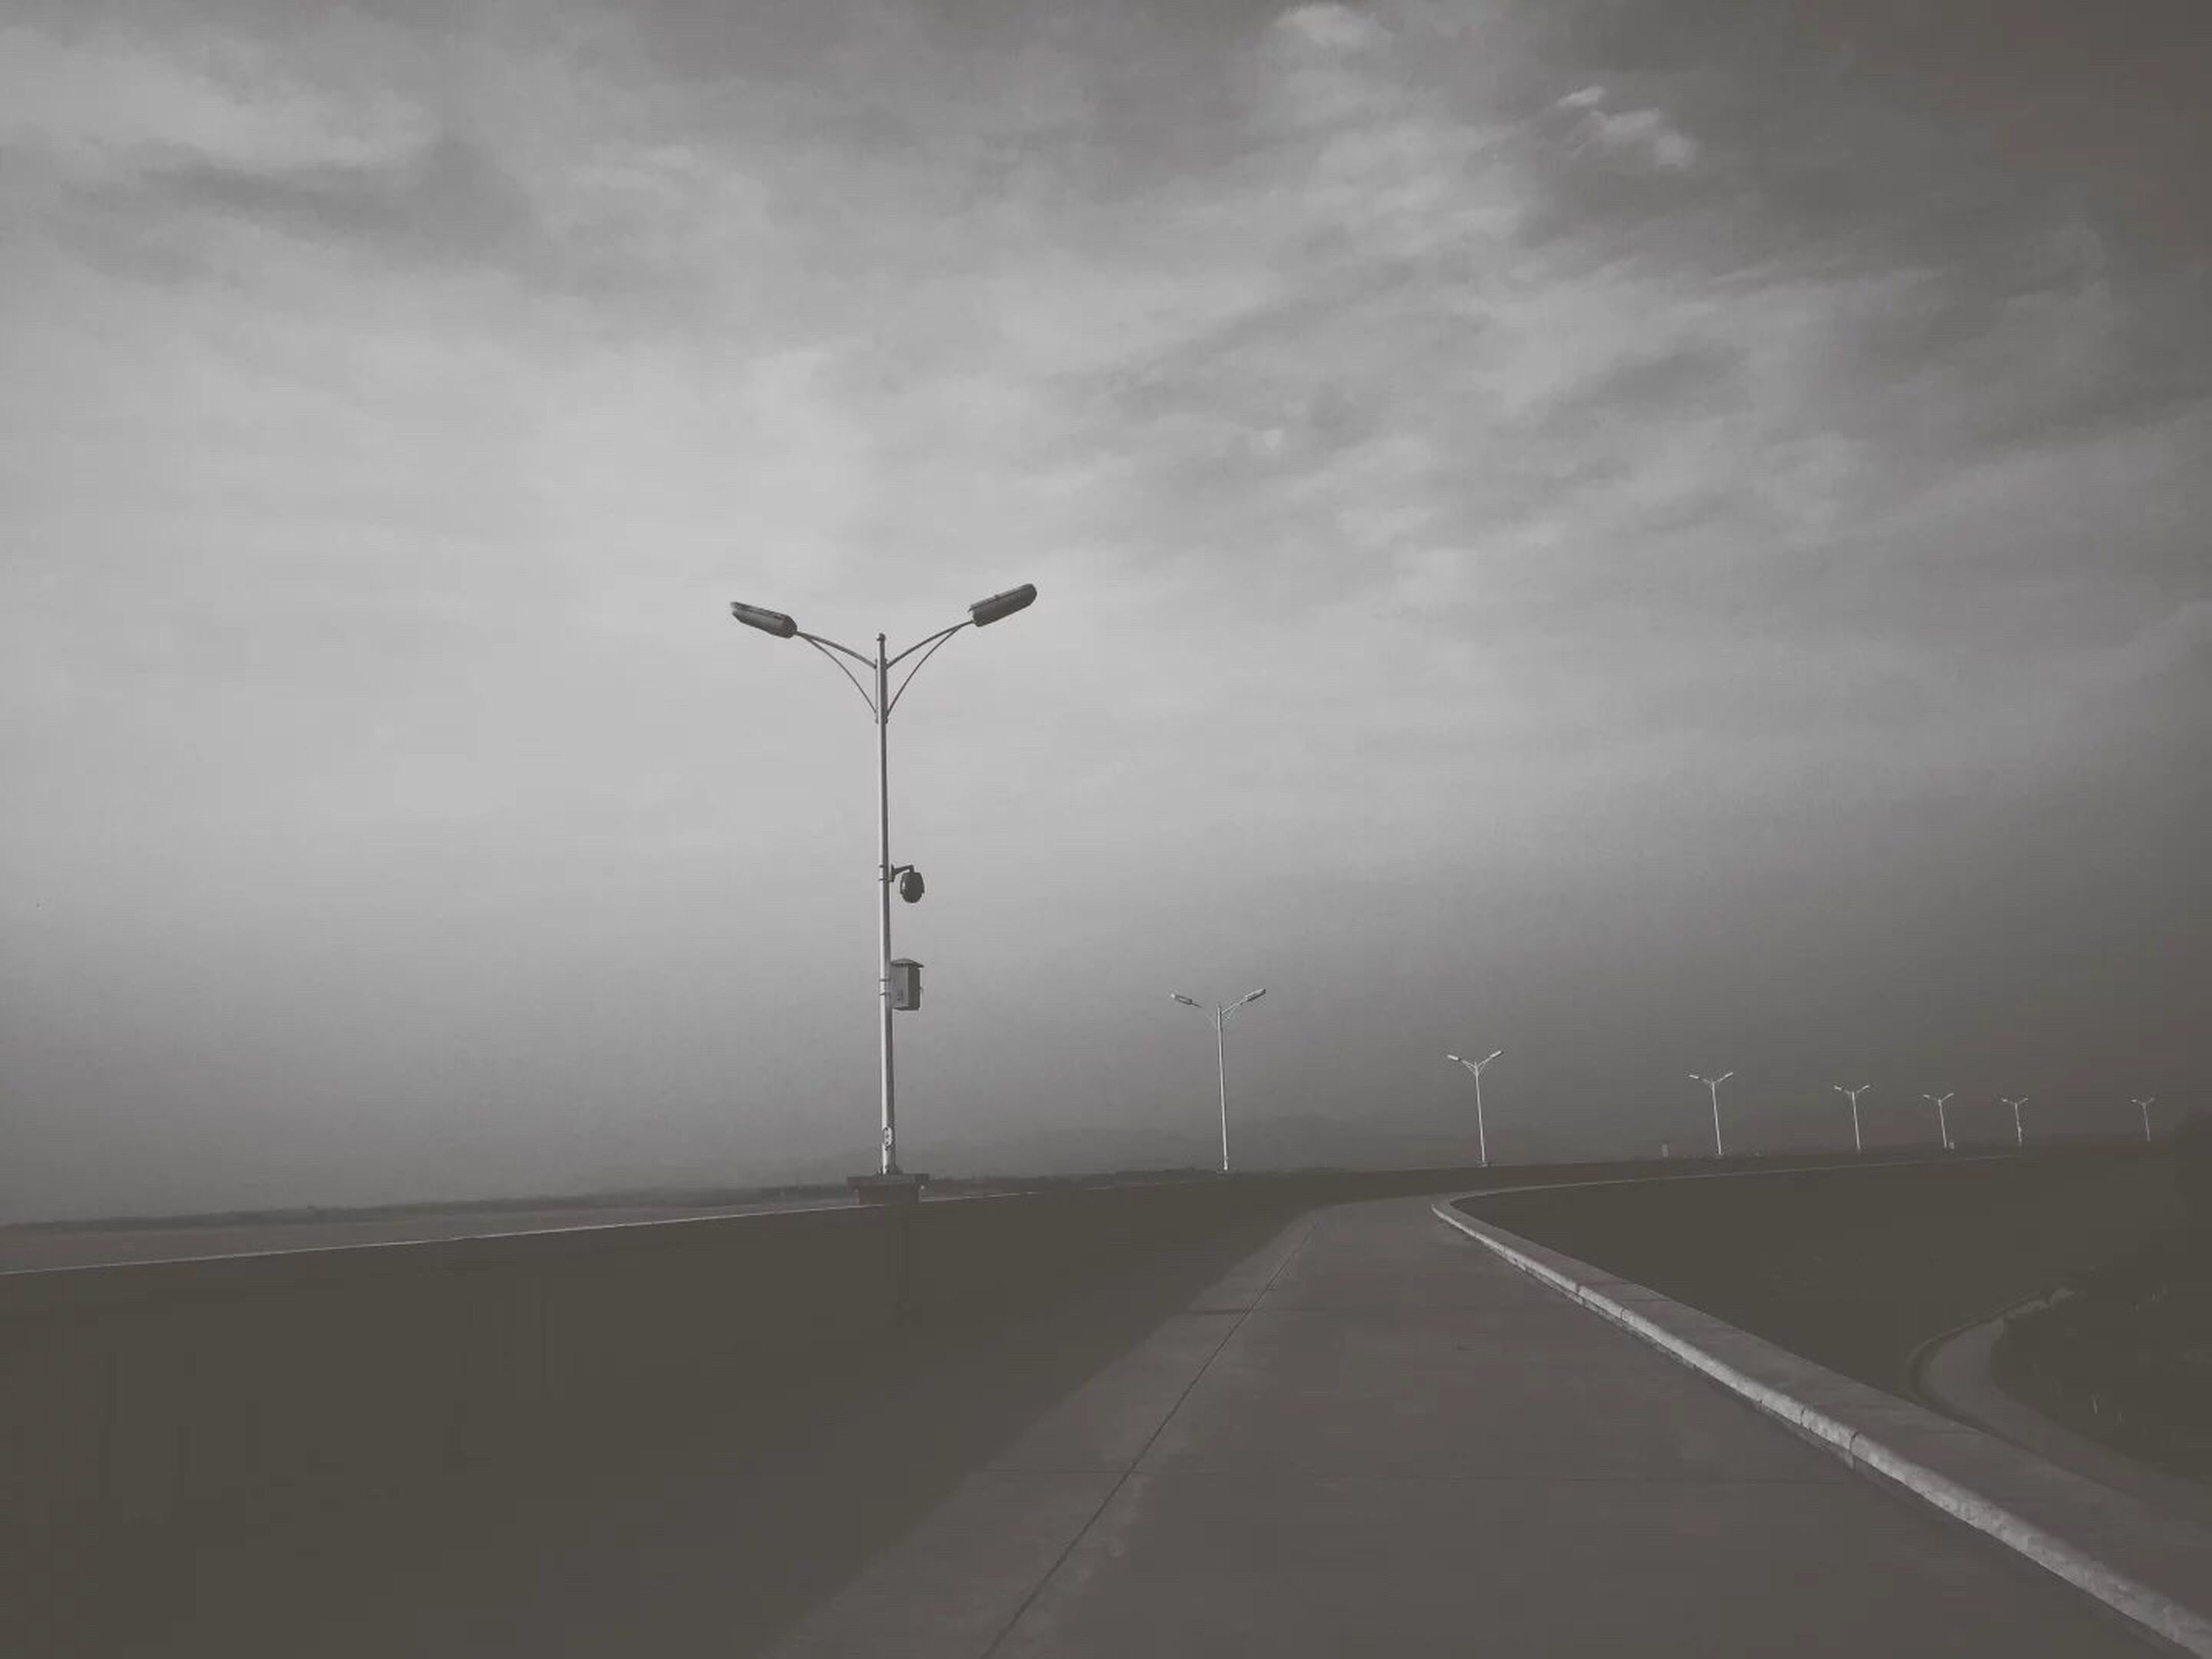 sky, the way forward, street light, cloud - sky, cloudy, weather, overcast, lighting equipment, road, built structure, diminishing perspective, cloud, nature, empty, tranquility, outdoors, street, architecture, vanishing point, railing